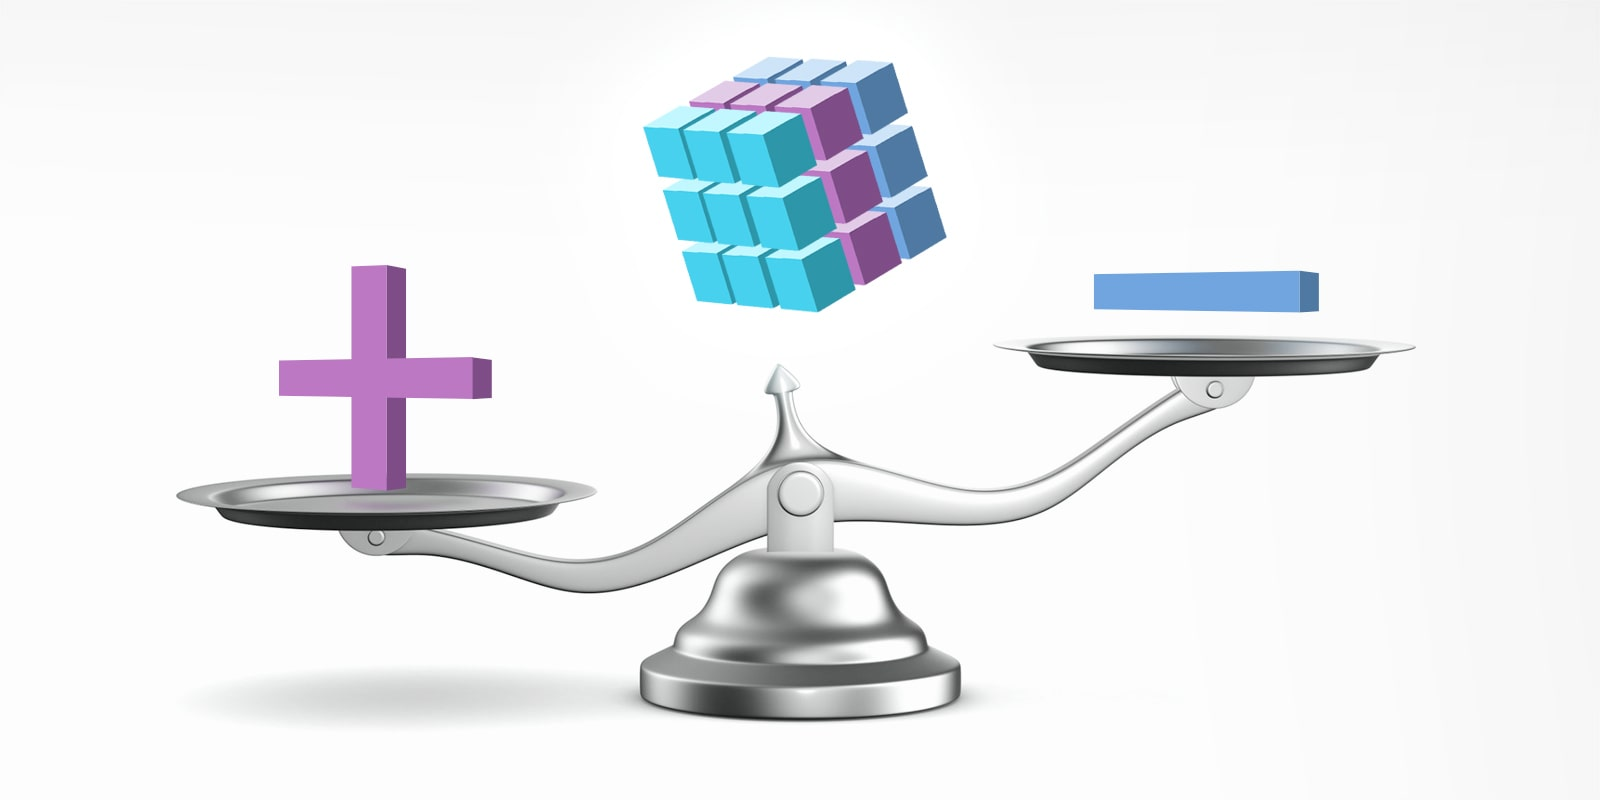 OLAP cube pros and cons